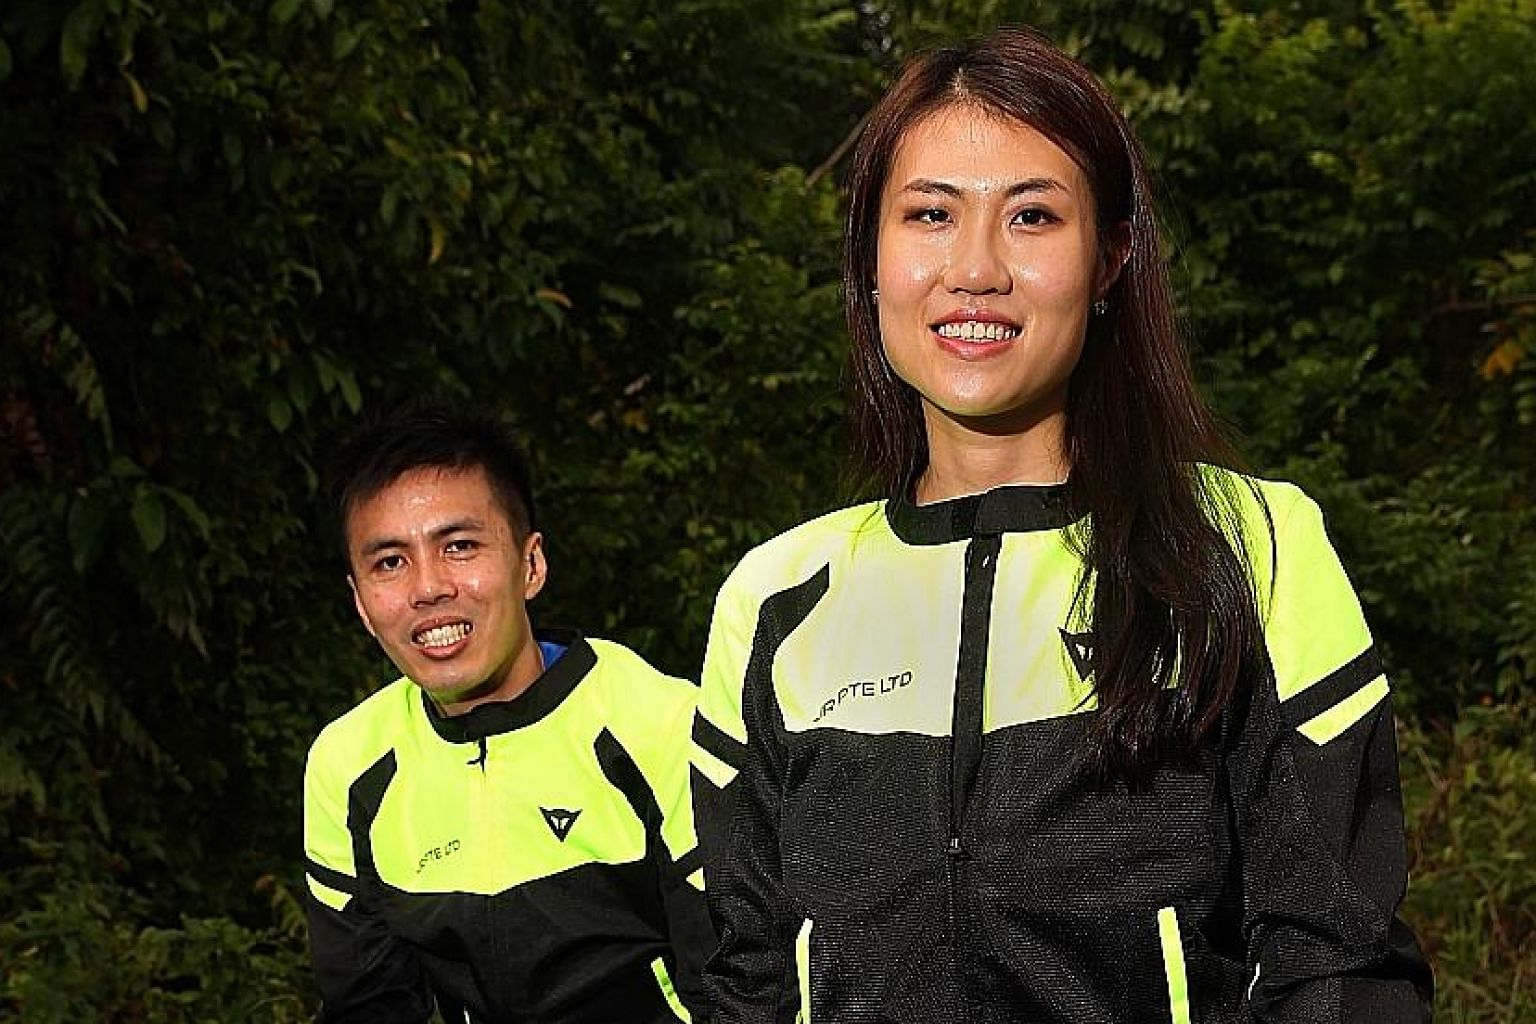 Singaporean married couple Kelvin Cai and Debbie Lim will set off on a motorcycle adventure next week across six continents, over a distance of between 120,000km and 180,000km, for the next four to six years.